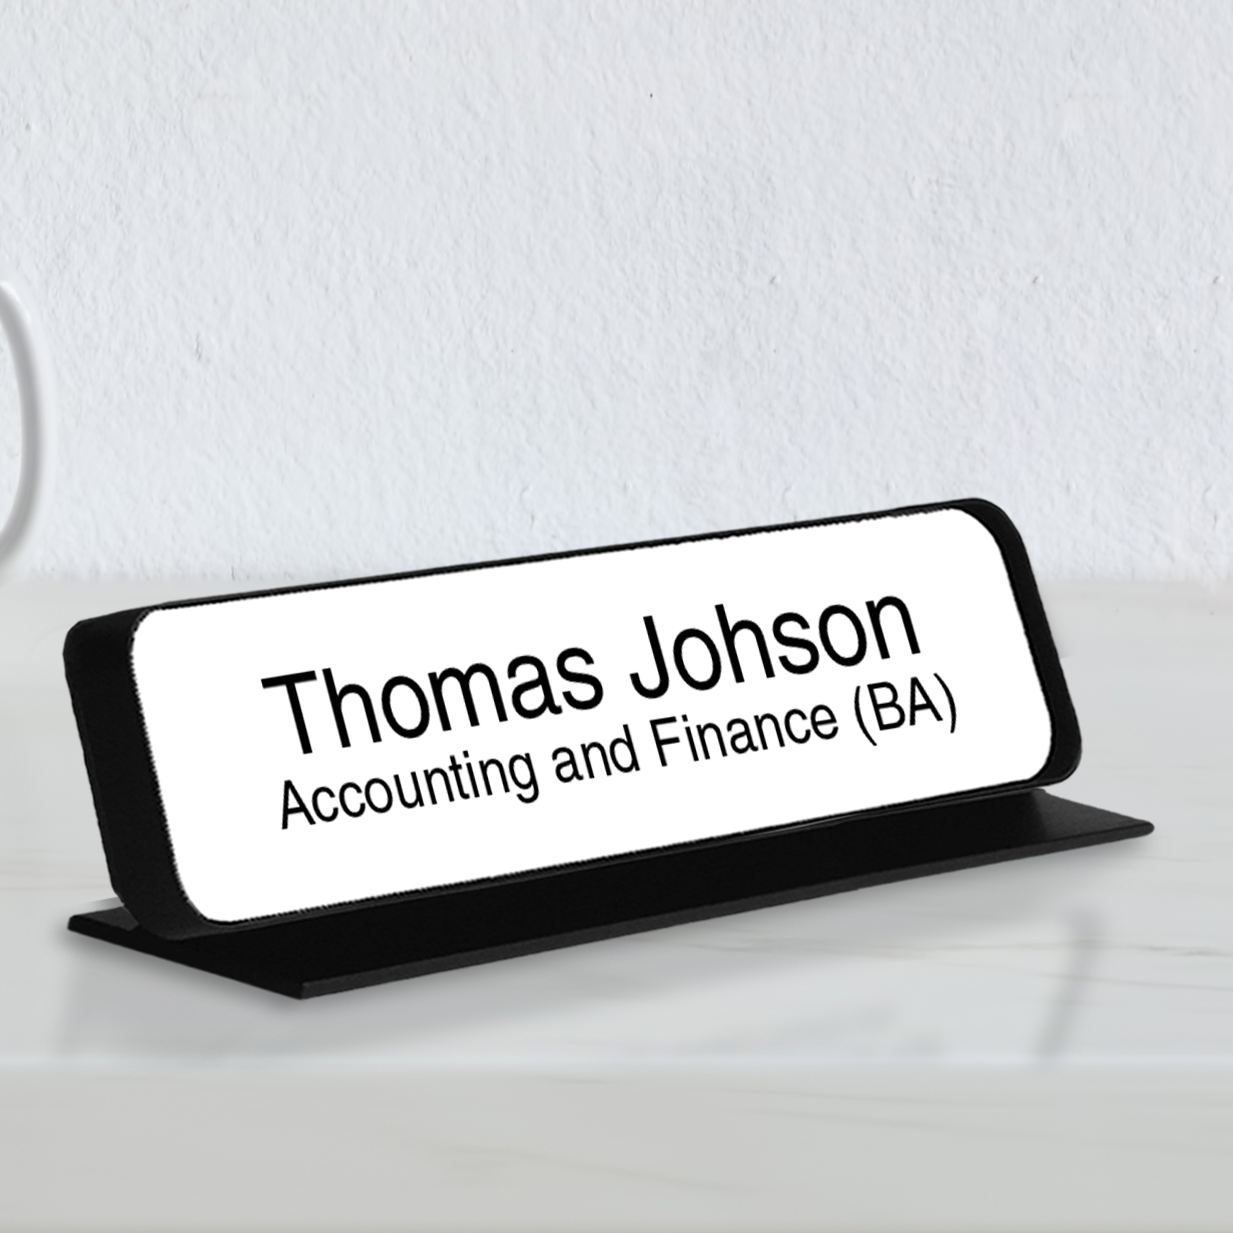 Deluxe Engraved Desk Nameplate